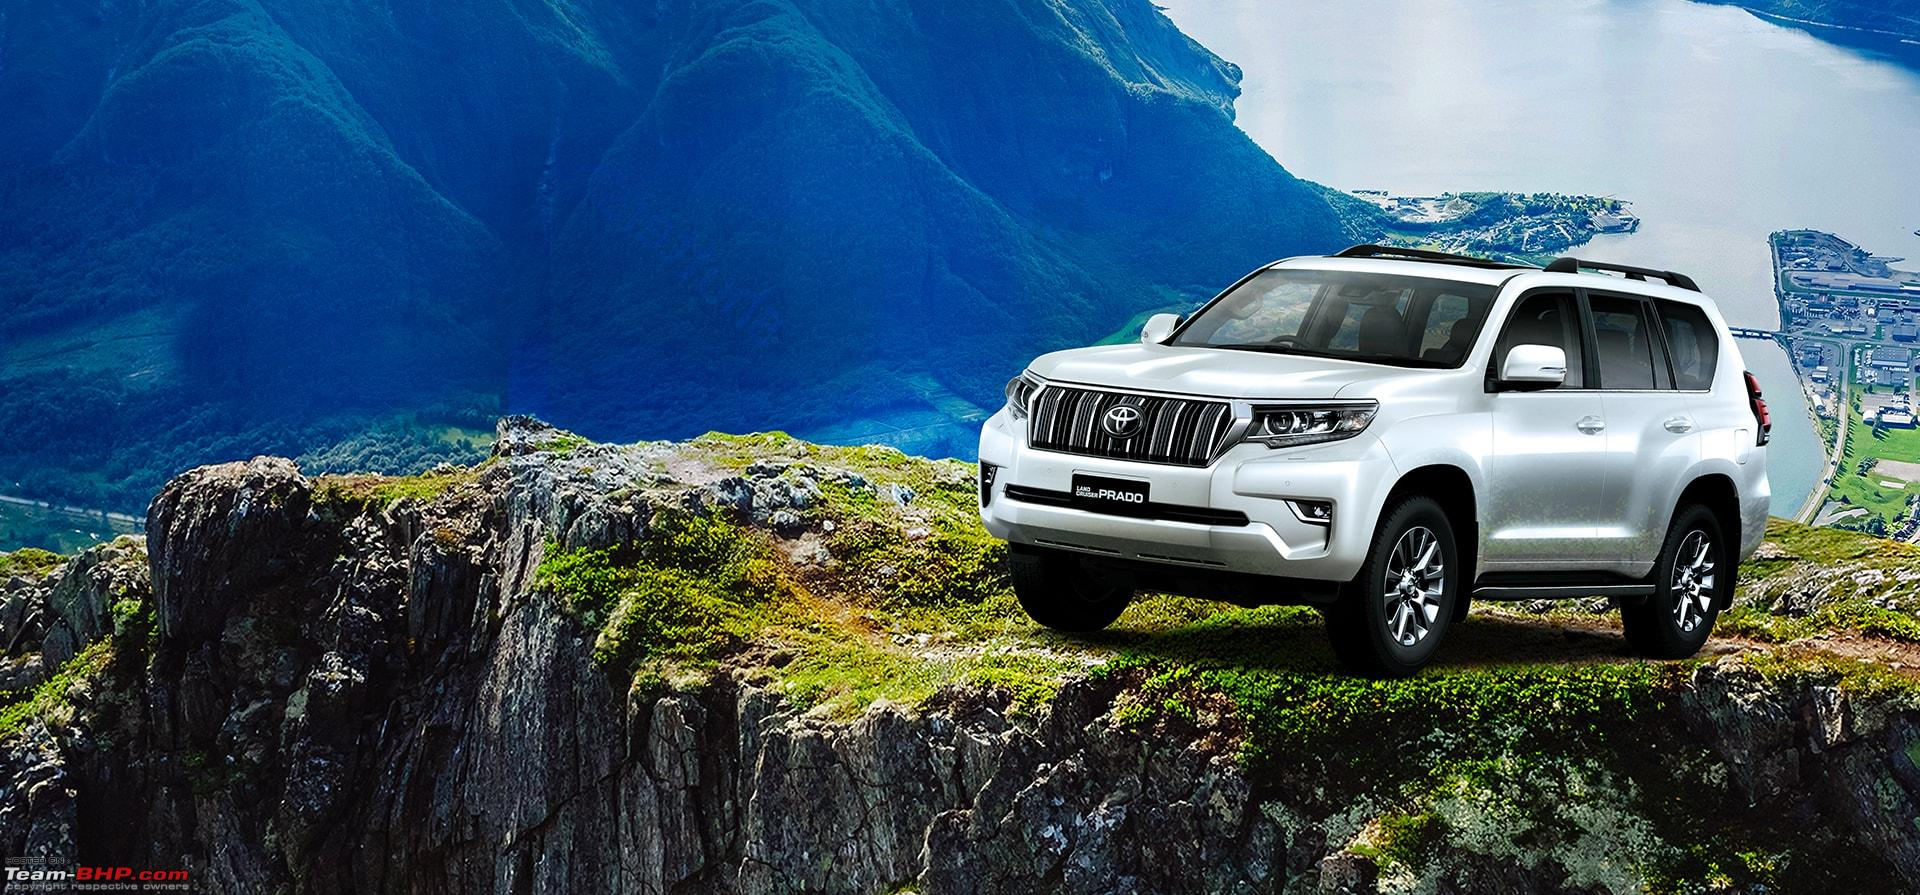 2018 Toyota Land Cruiser Prado launched at Rs  92 60 lakh